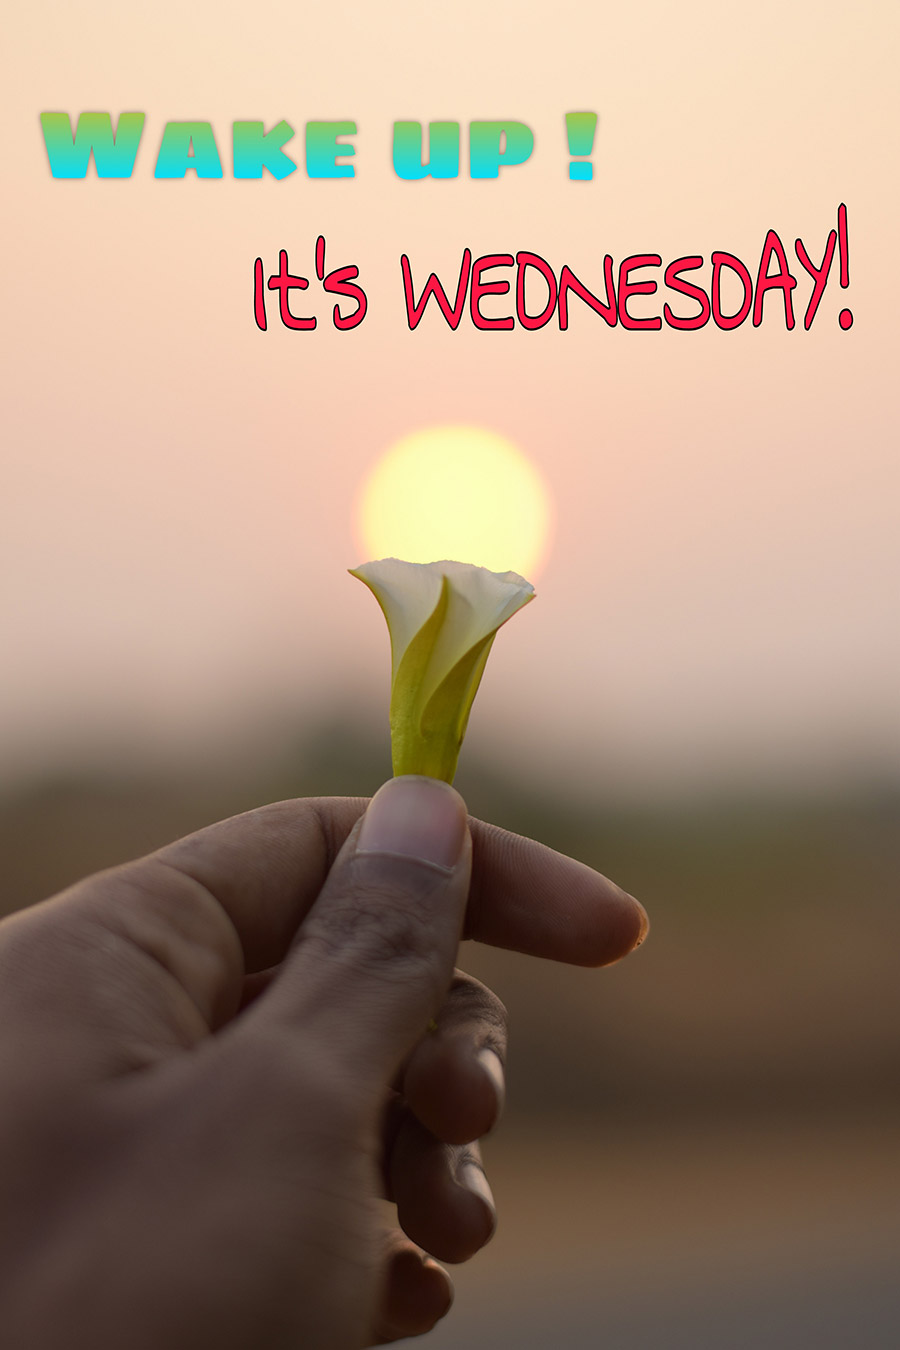 Good morning wednesday image with flower àn the sun